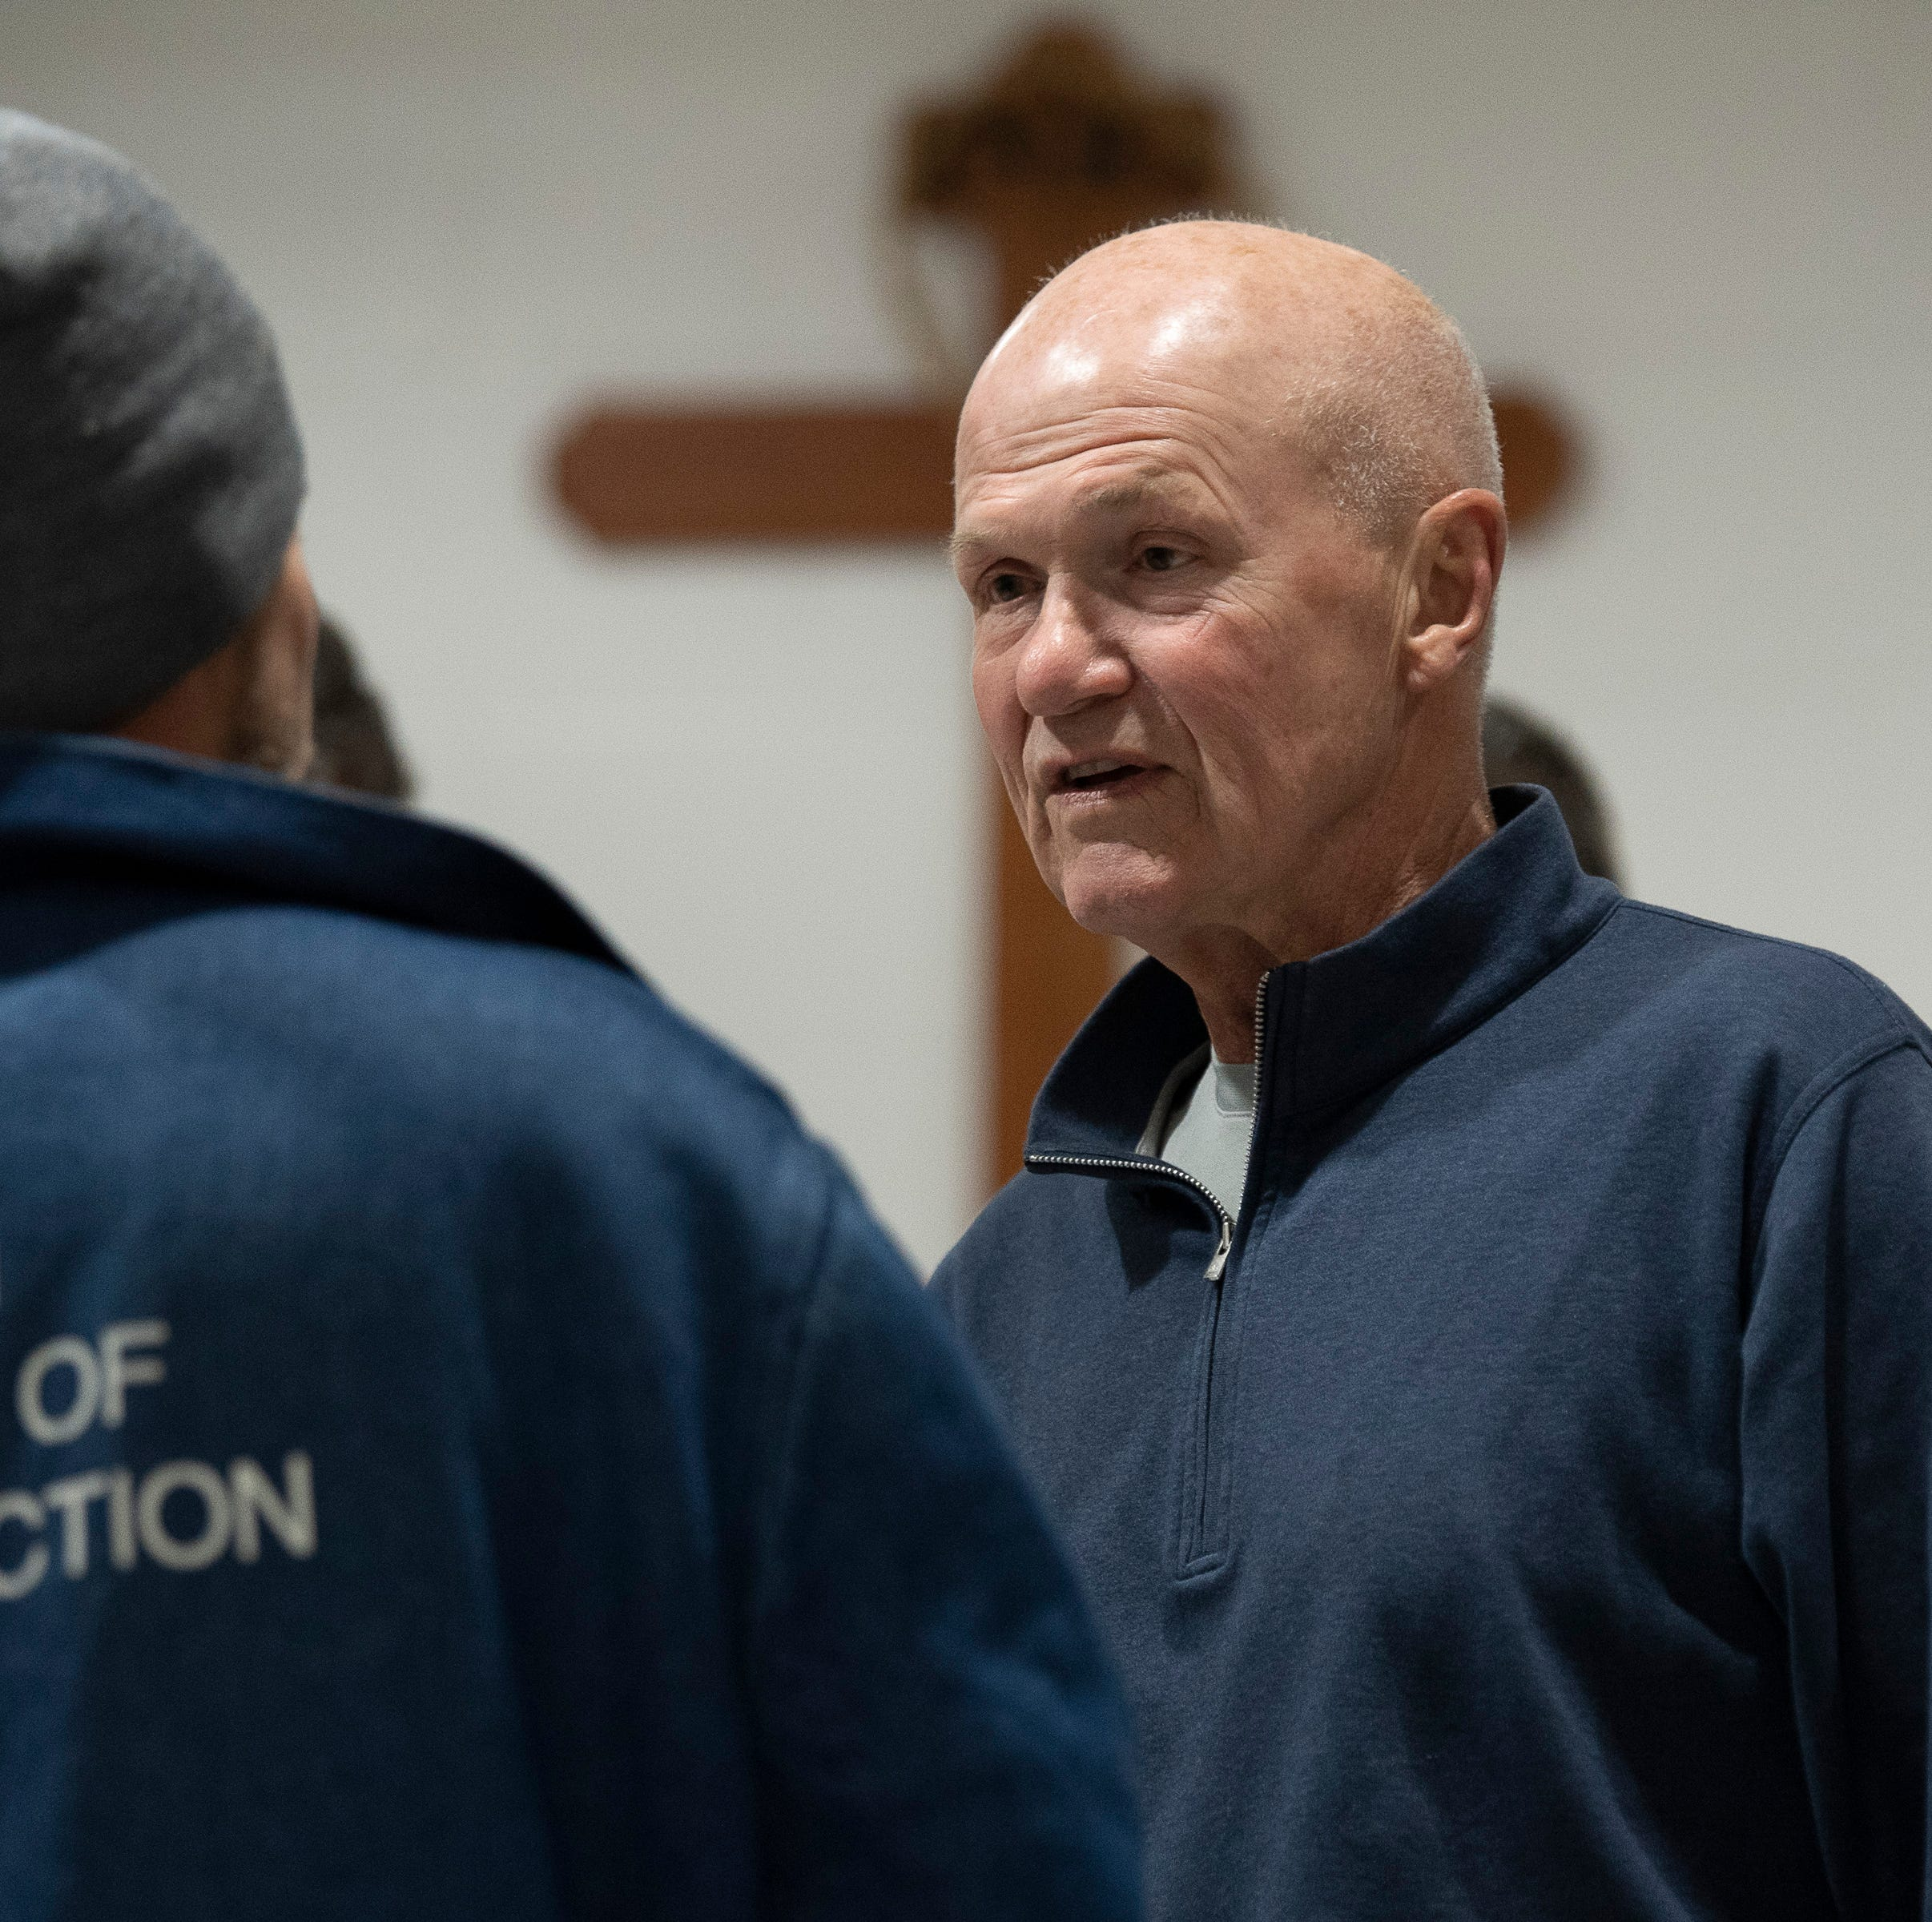 Rudy Kalis strengthens his own faith through prayers with prisoners